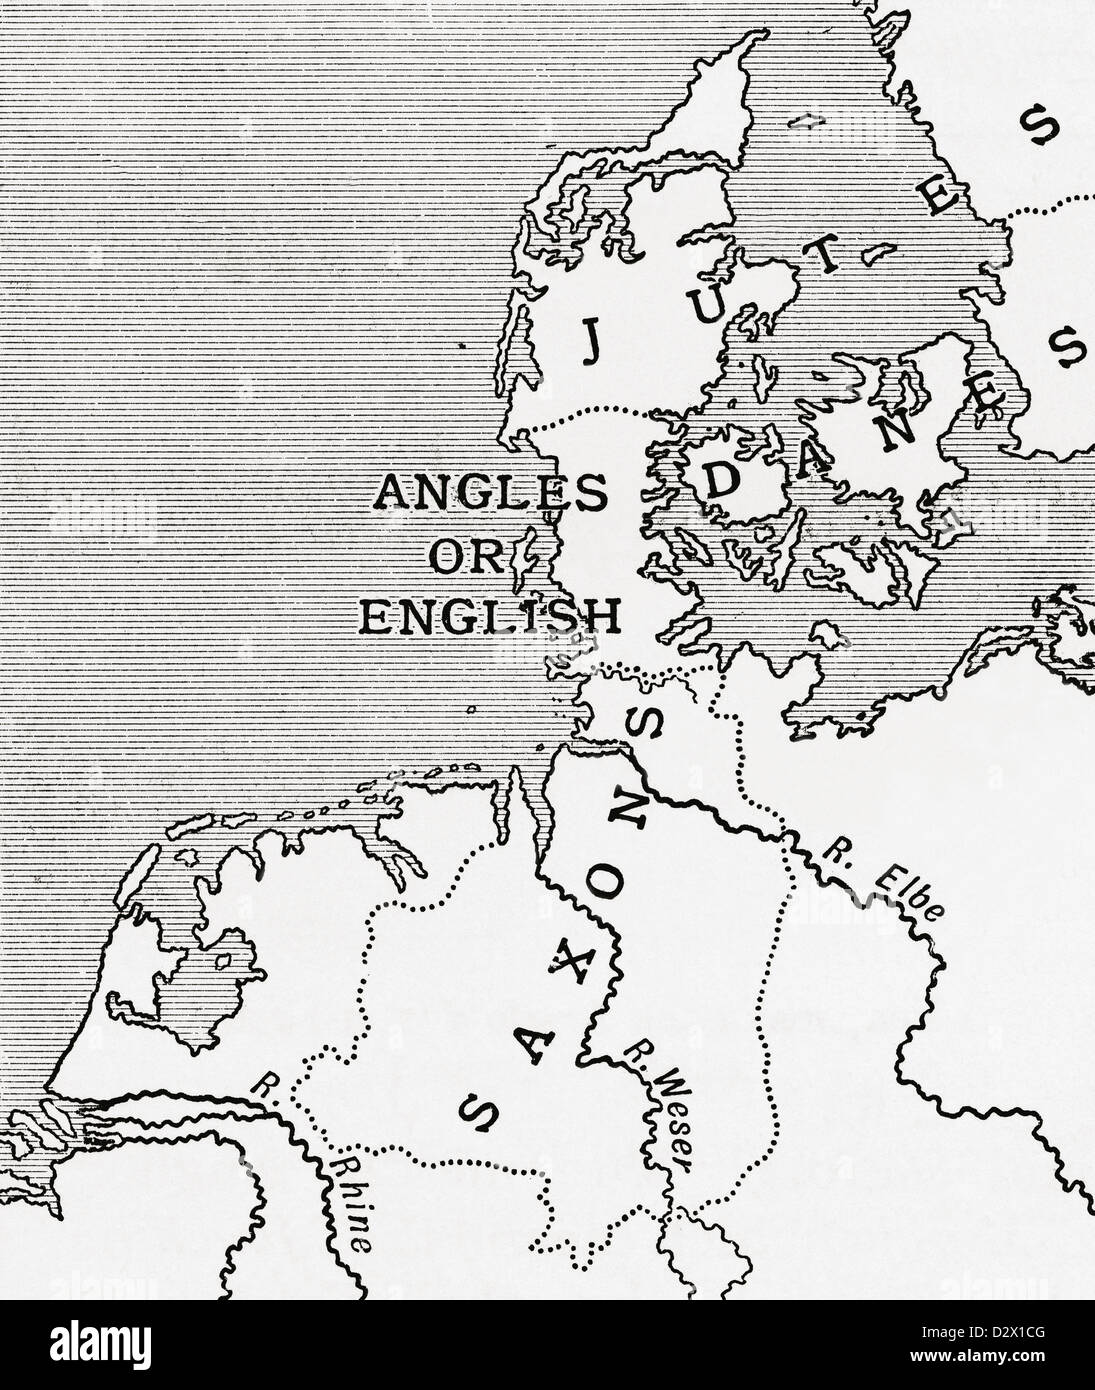 Map showing the old homes of the English in the 5th century. From A First Book of British History published 1925. - Stock Image